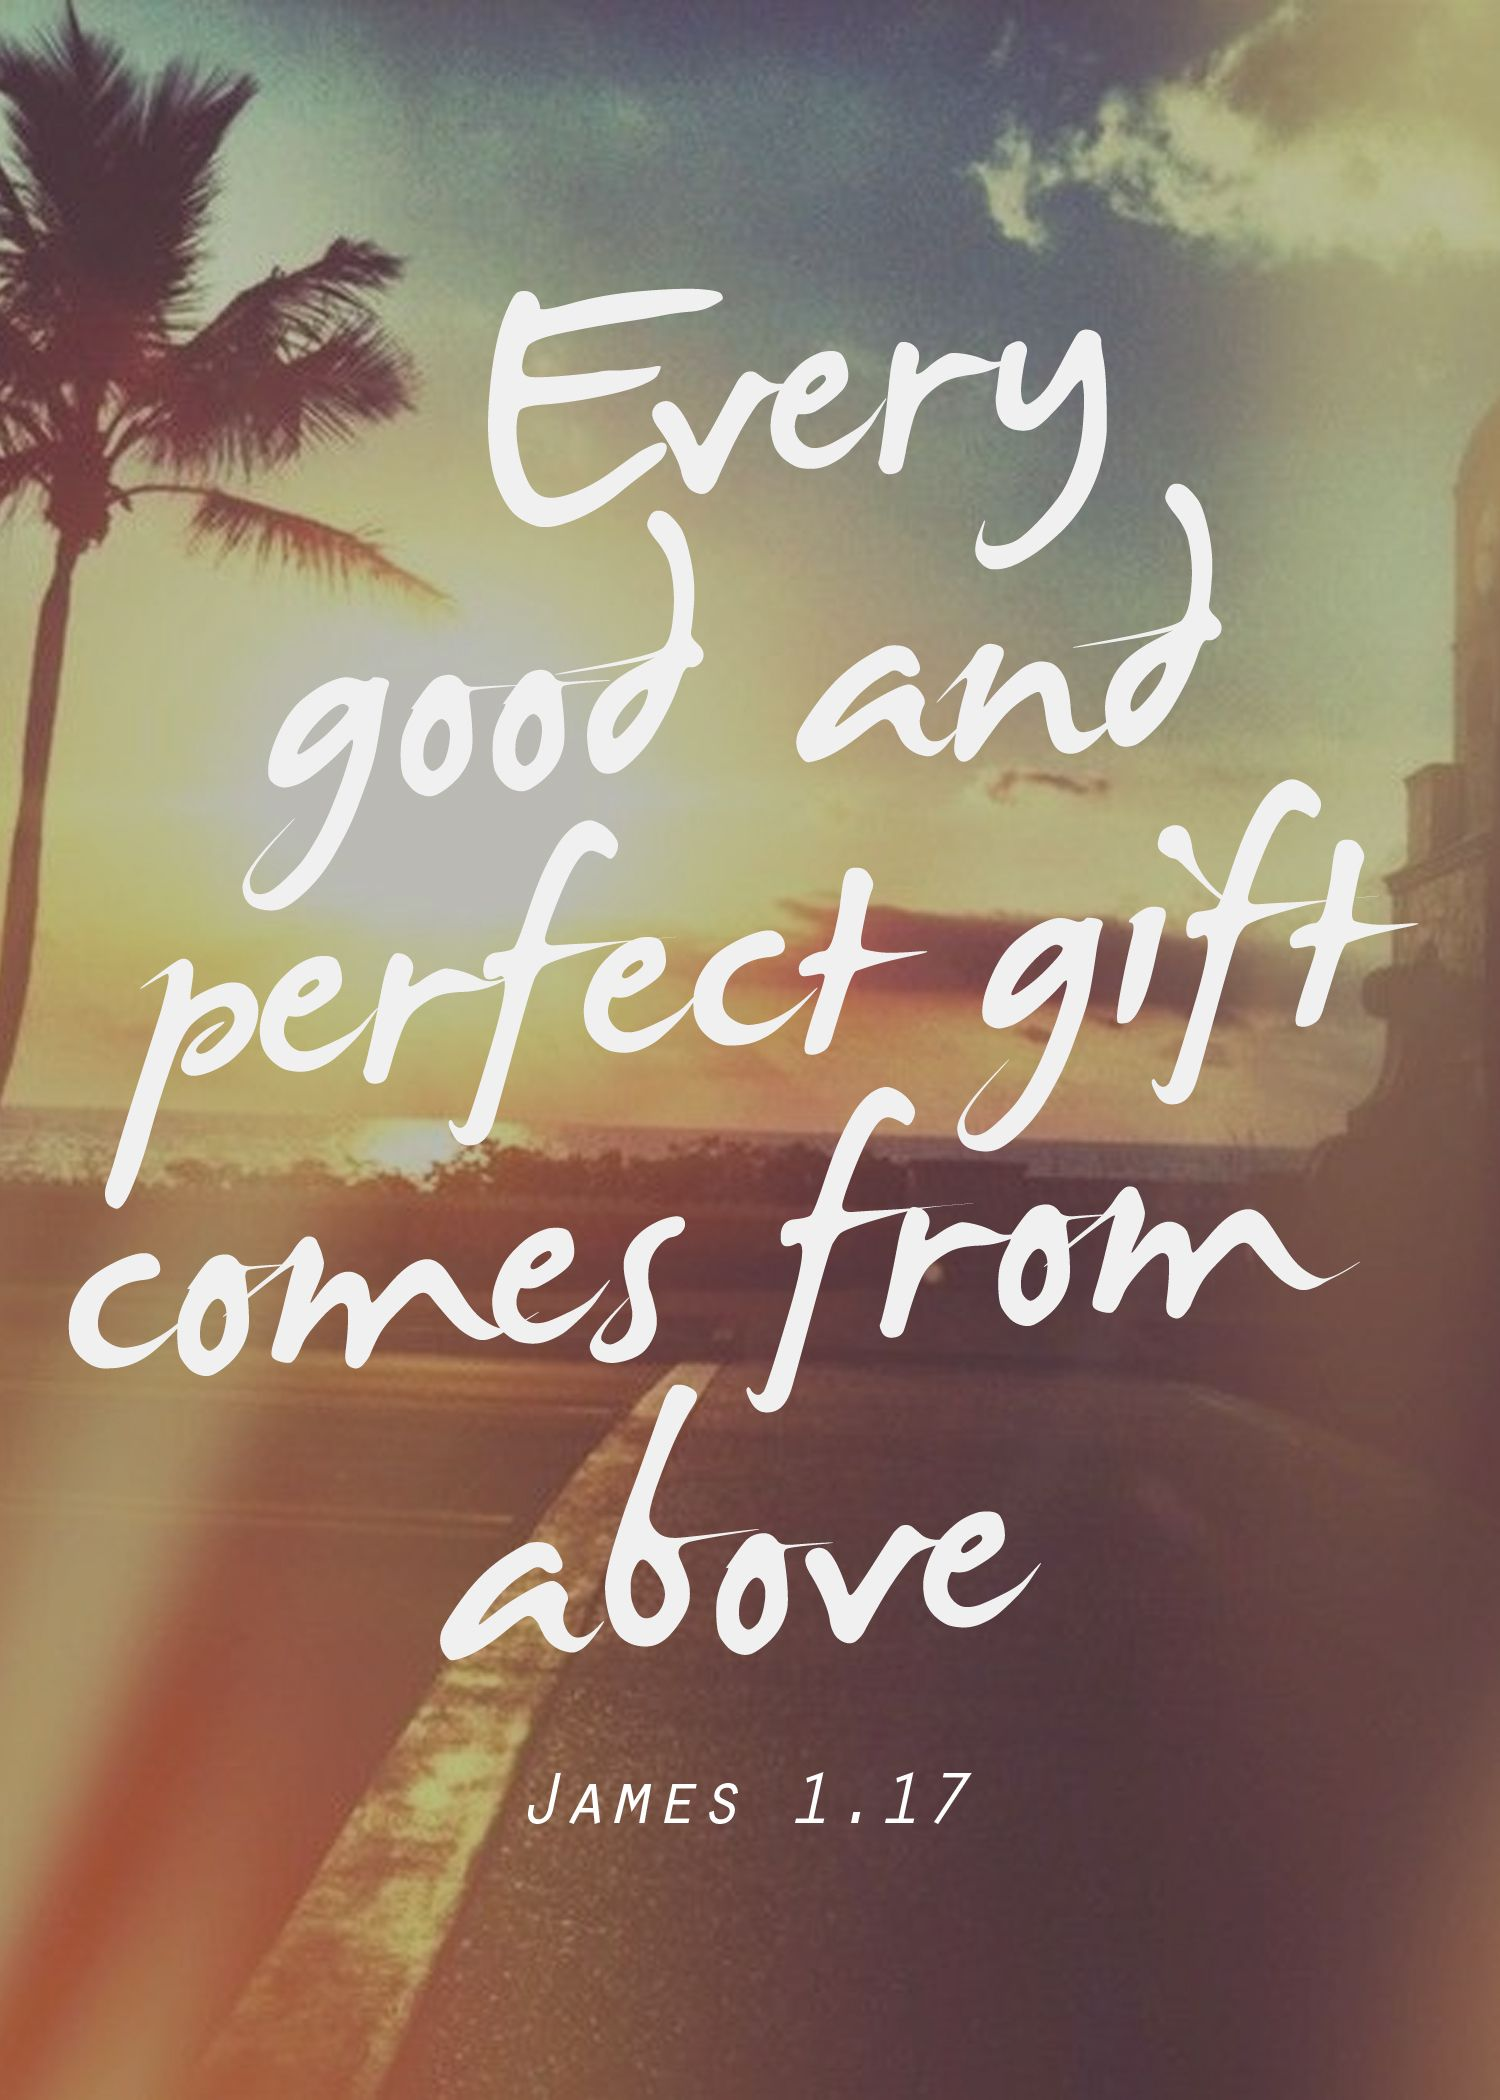 Every good and perfect gift comes from above. James 1.17 ...